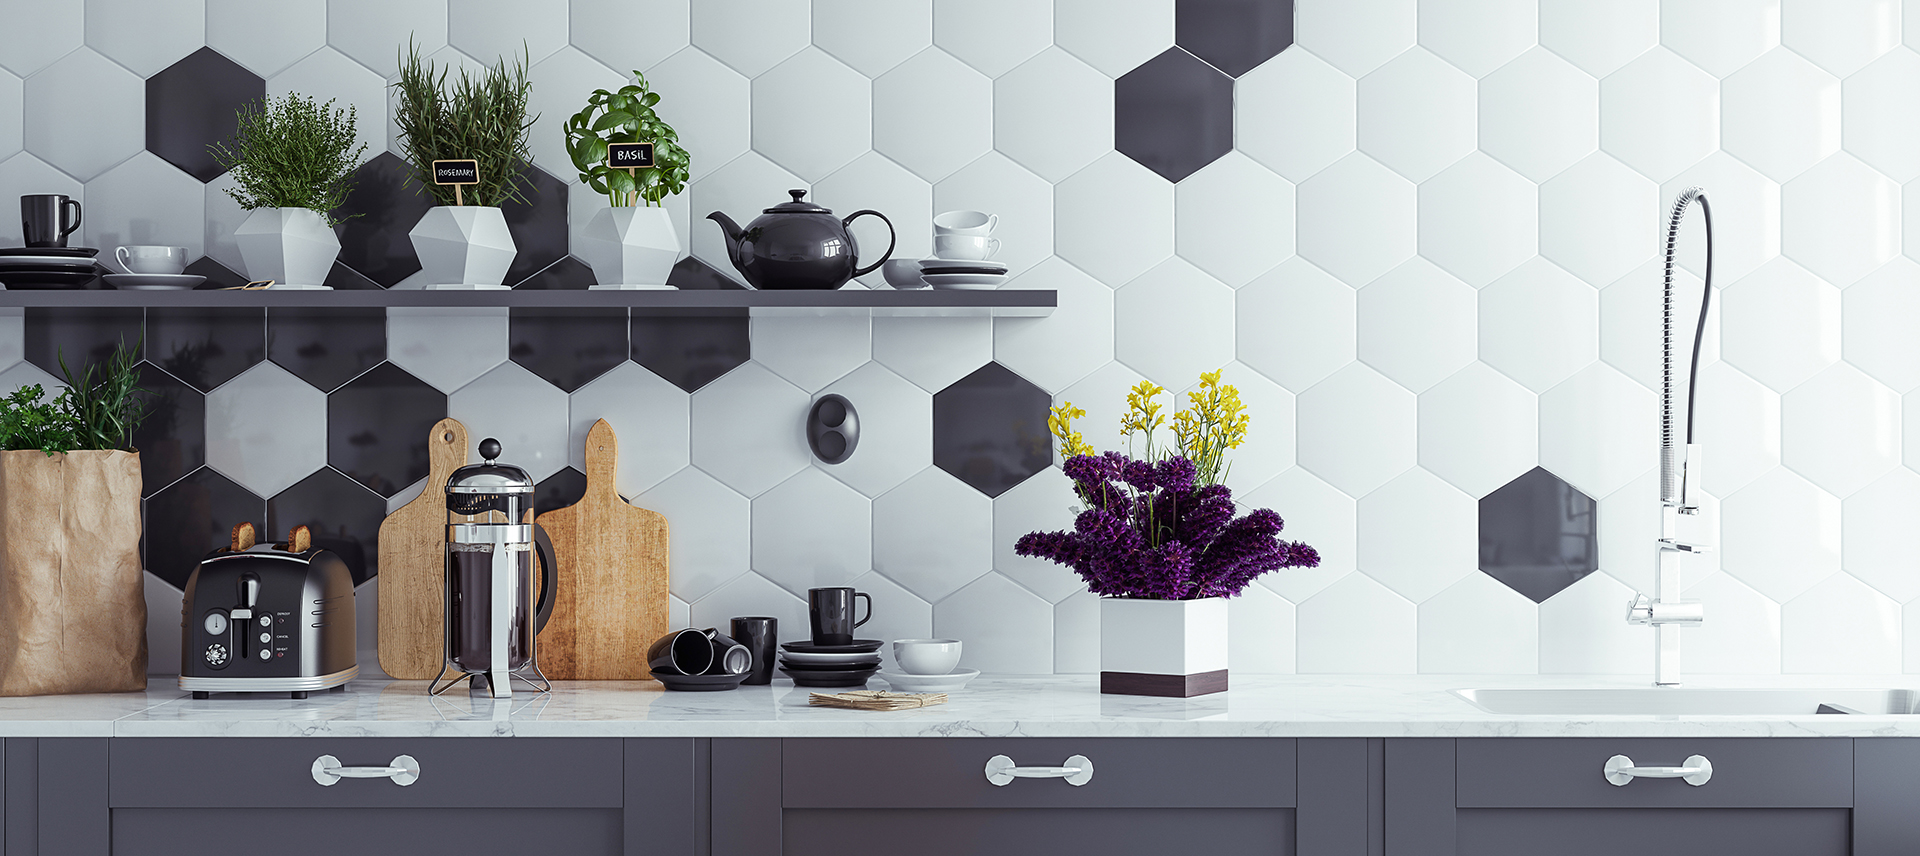 carrelage-cuisine-credence-cs17-carrelage-saintais-saintes-mosaique-hexagonal-carreaux-gres-moderne-pose